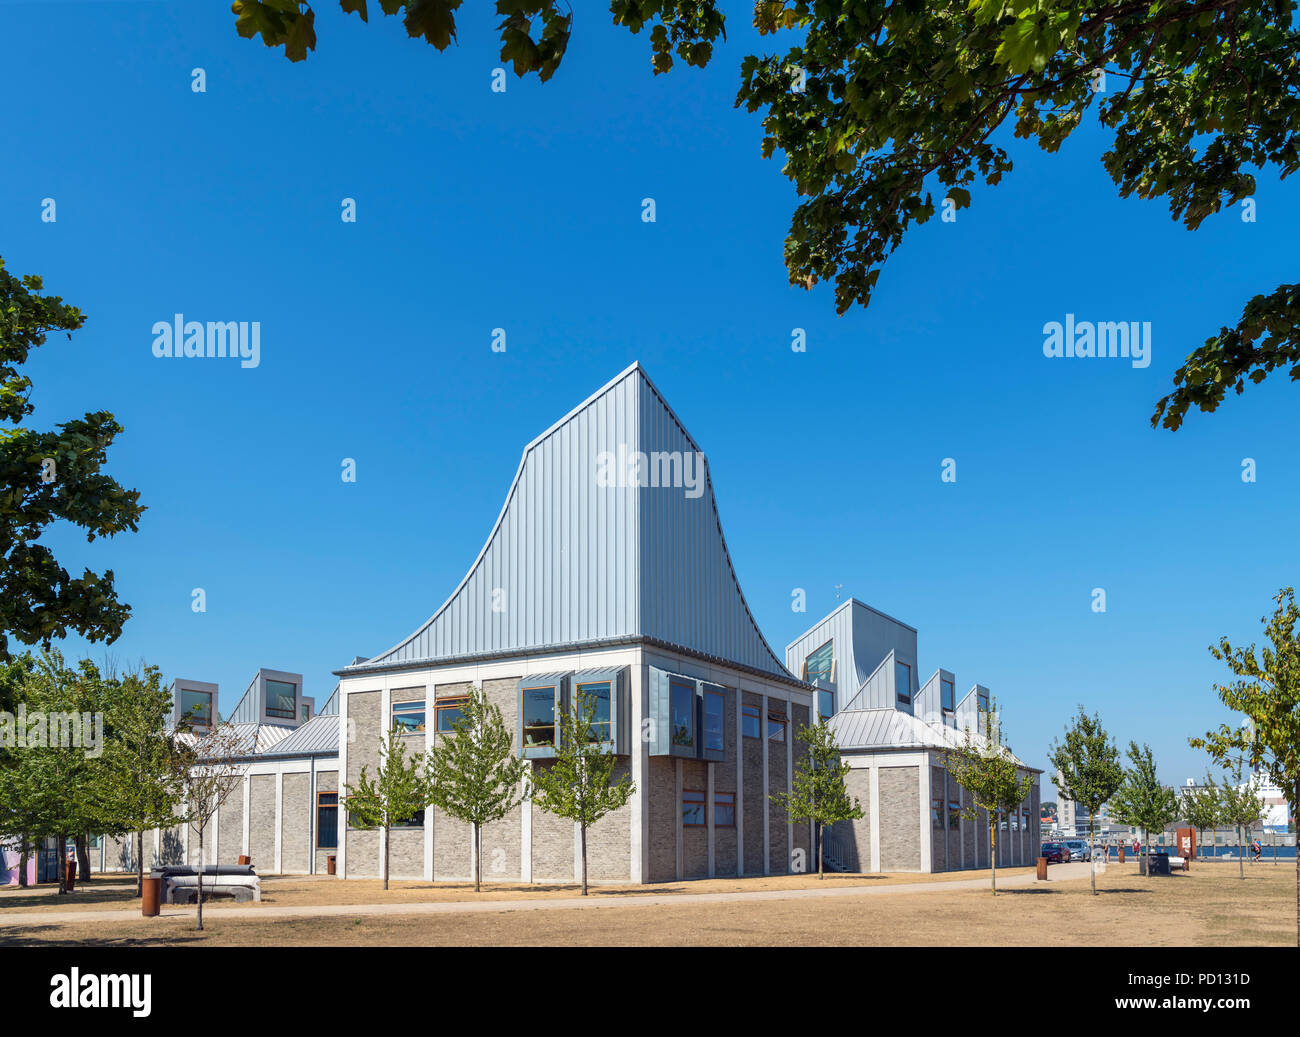 The Utzon Center, Aalborg, Denmark. The 2008 building was designed by Danish architect Jørn Utzon, who famously designed the Sydney Opera House. - Stock Image